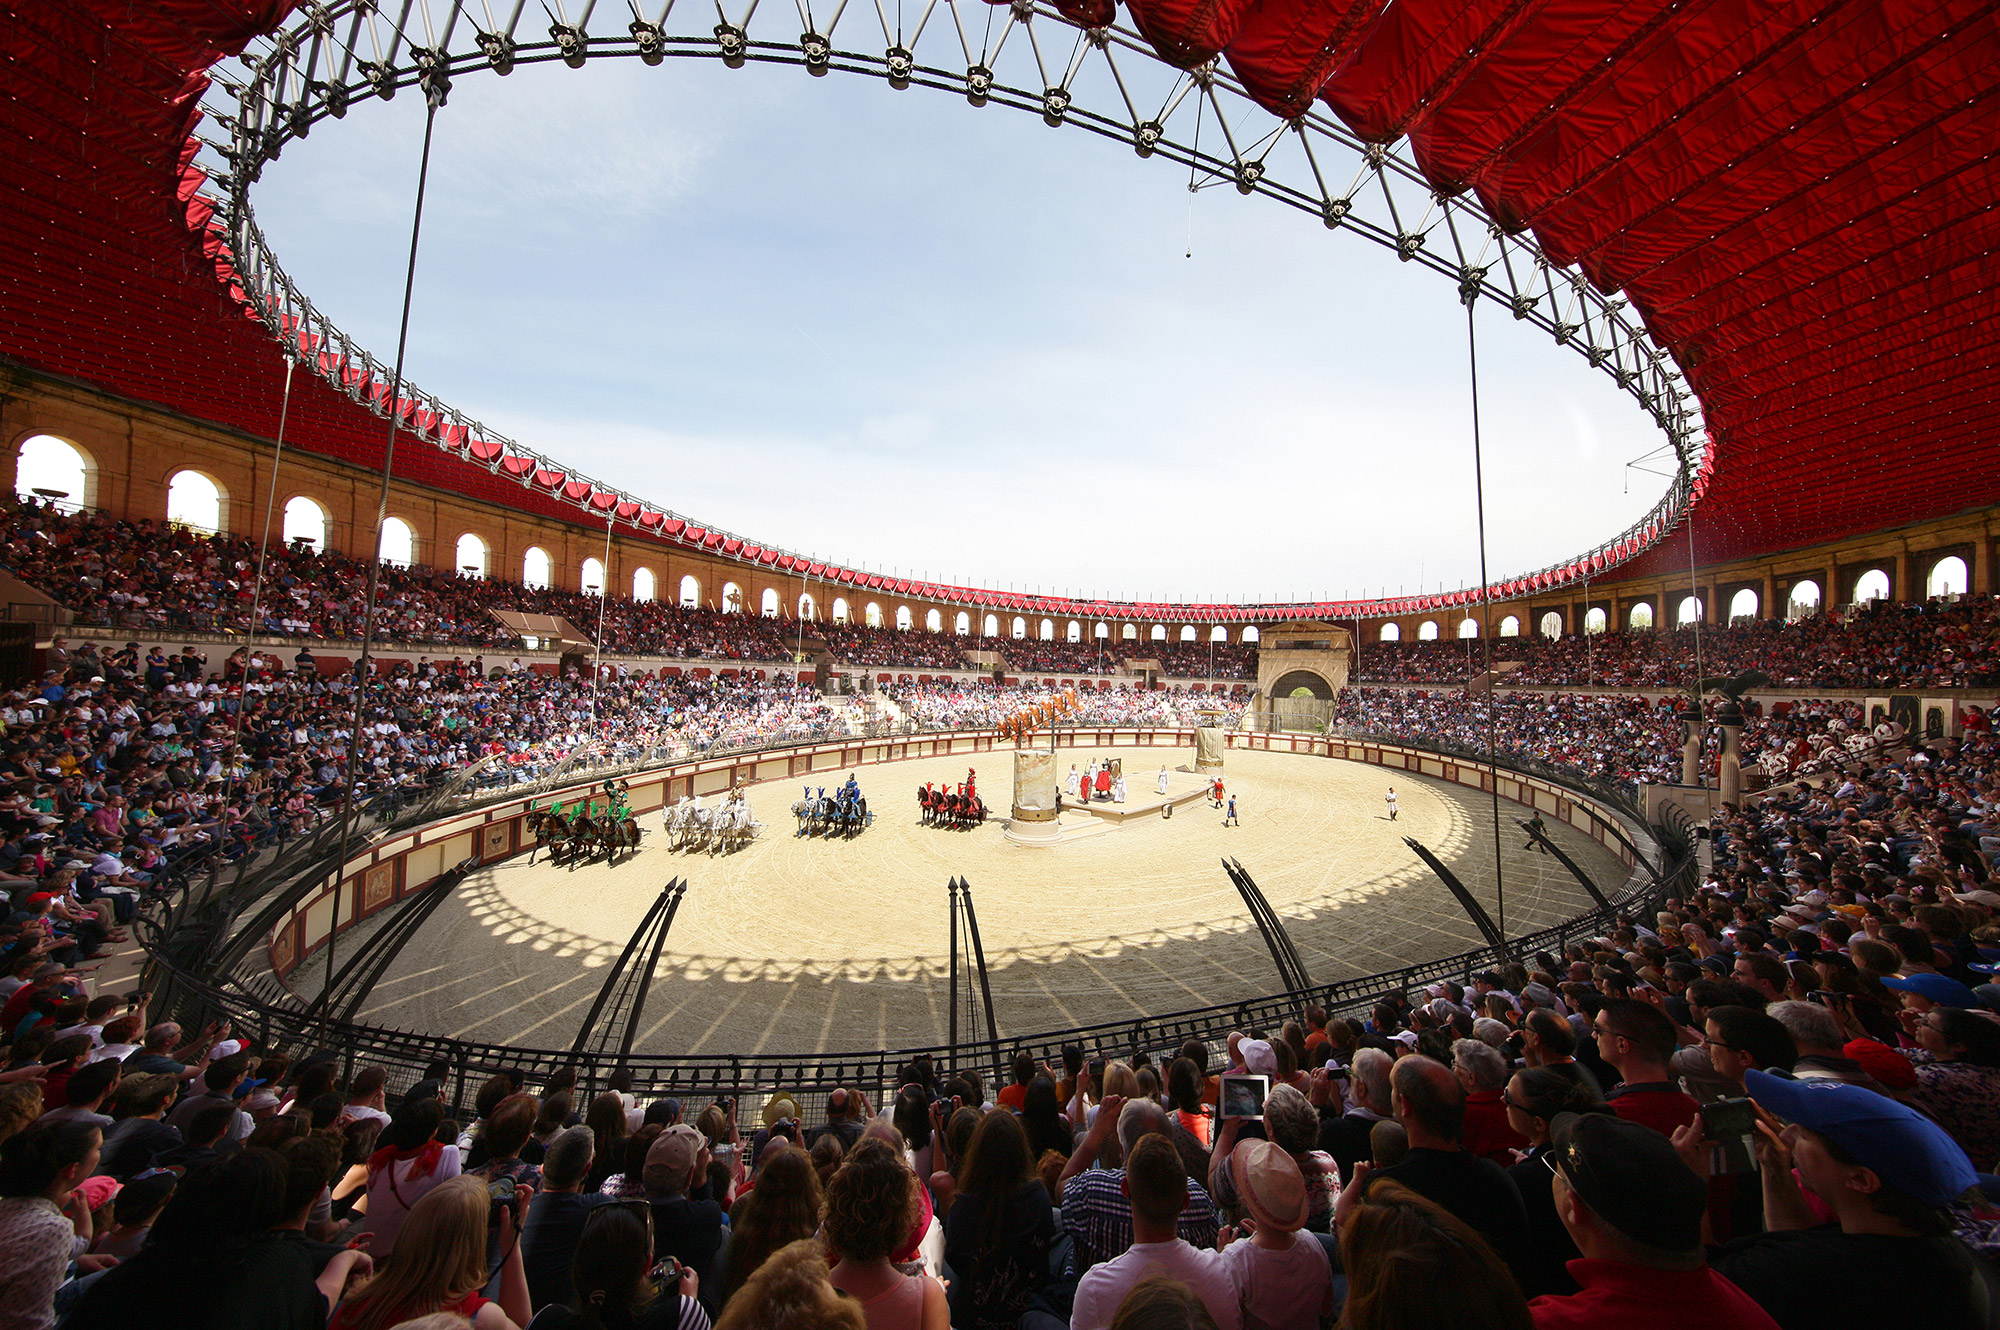 The show Signe du Triomphe in the Coliseum at Puy du fou (Photo courtesy Puy du Fou)